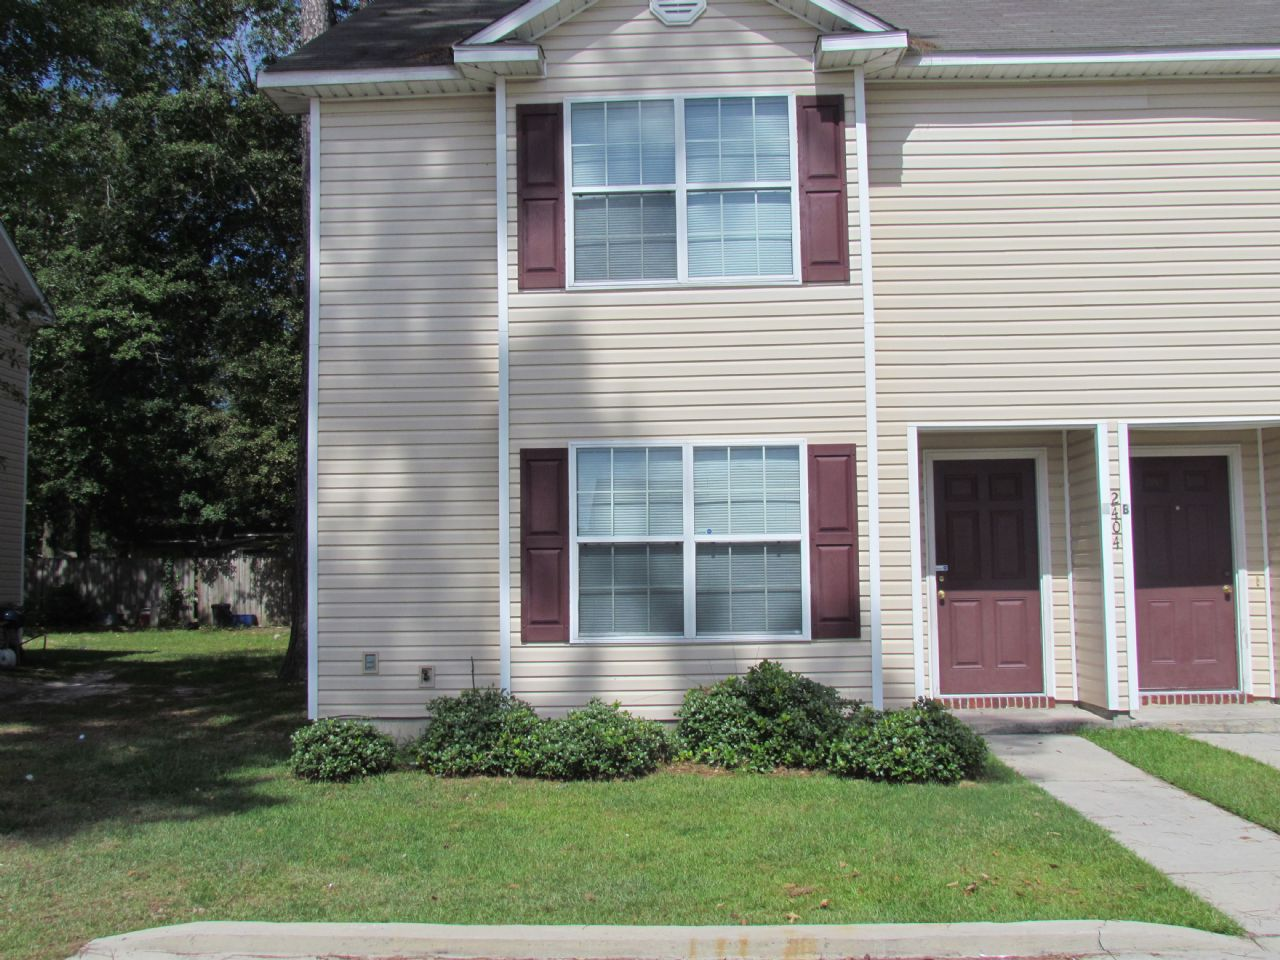 1 bedroom apartments in valdosta ga for 2 bedroom apartments in georgia